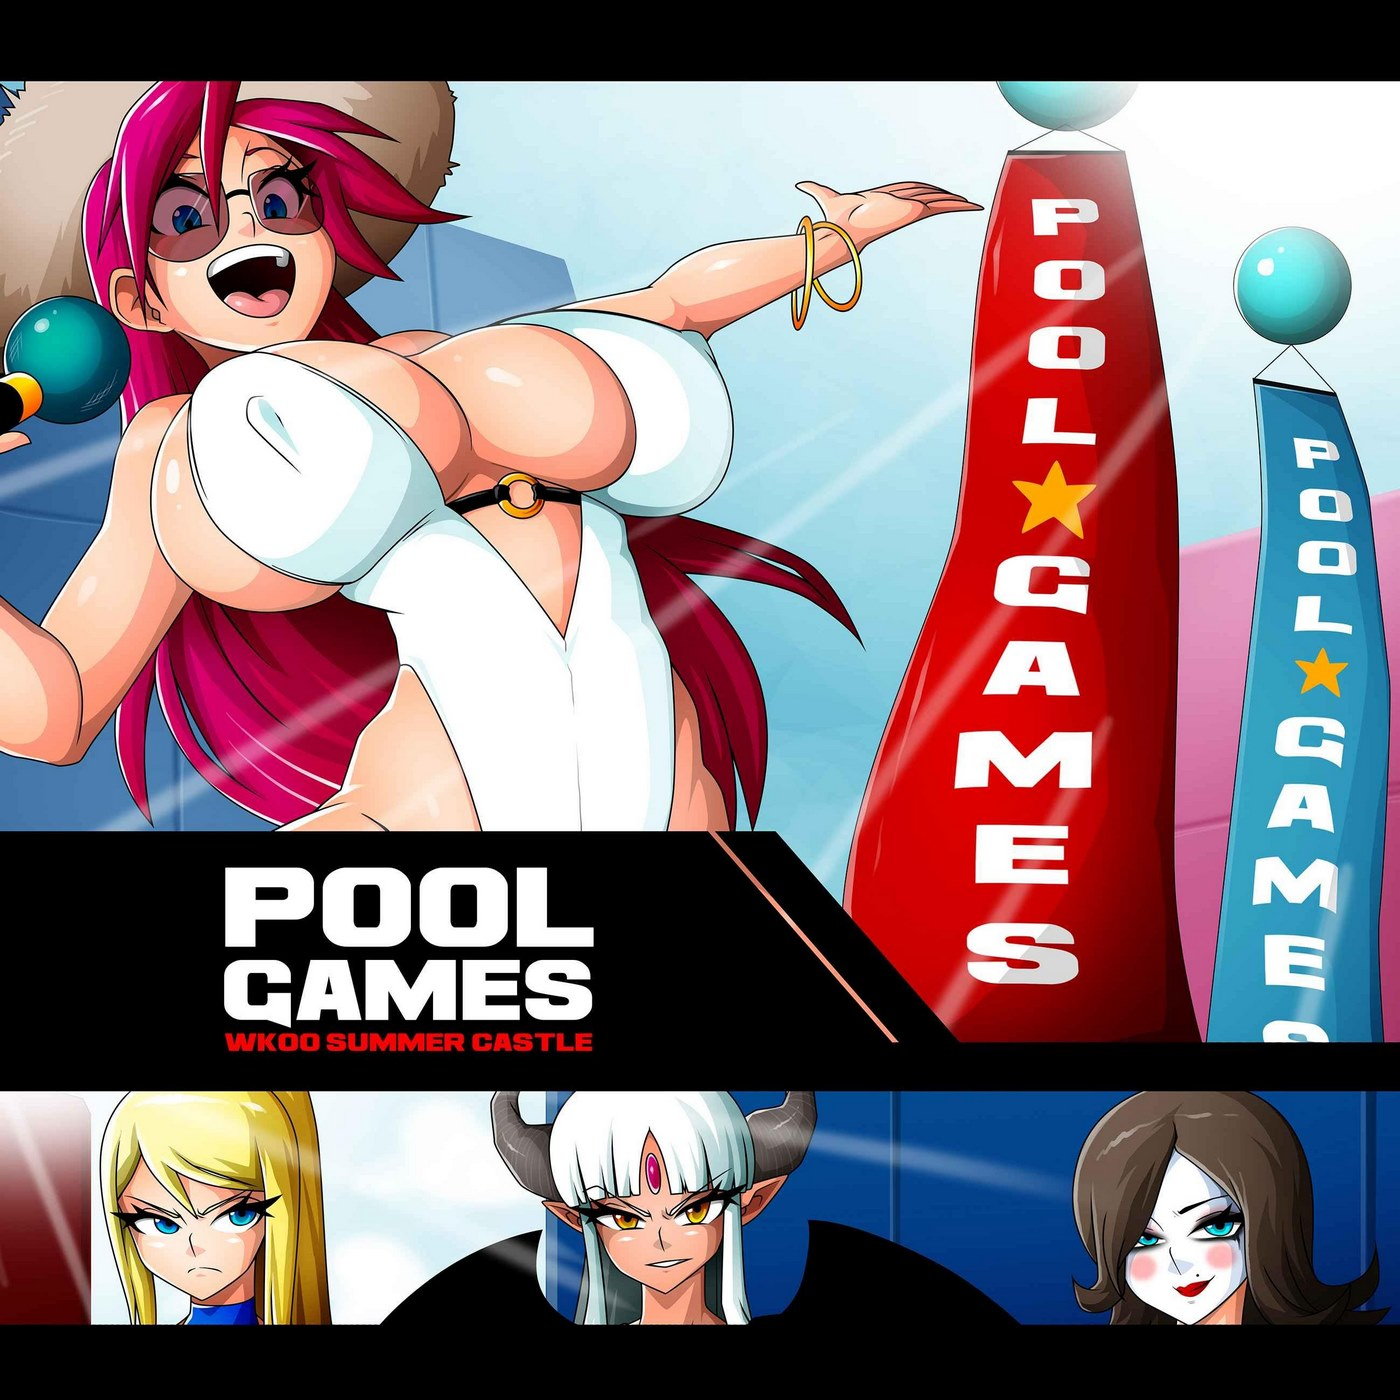 Pool Games- Witchking00 porn comics 8 muses